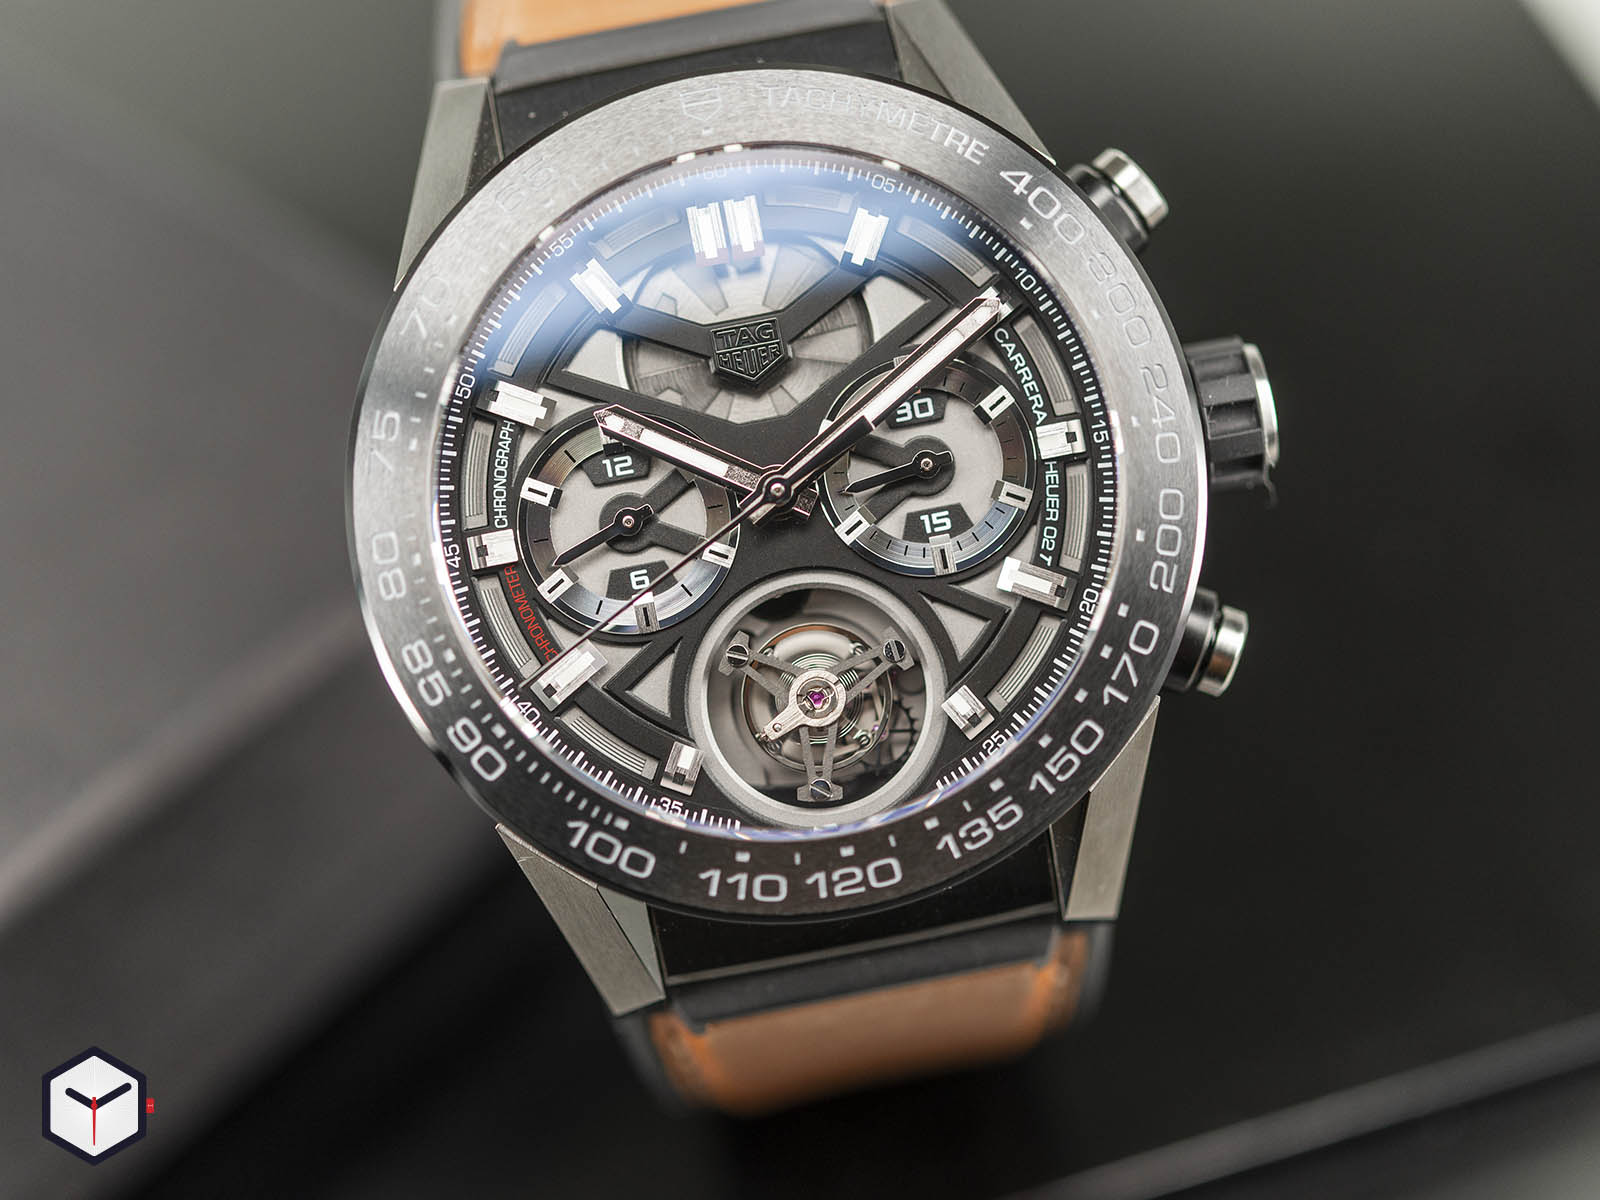 car5a8y-ft6072-tag-heuer-carrera-calibre-heuer-02t-cosc-3.jpg